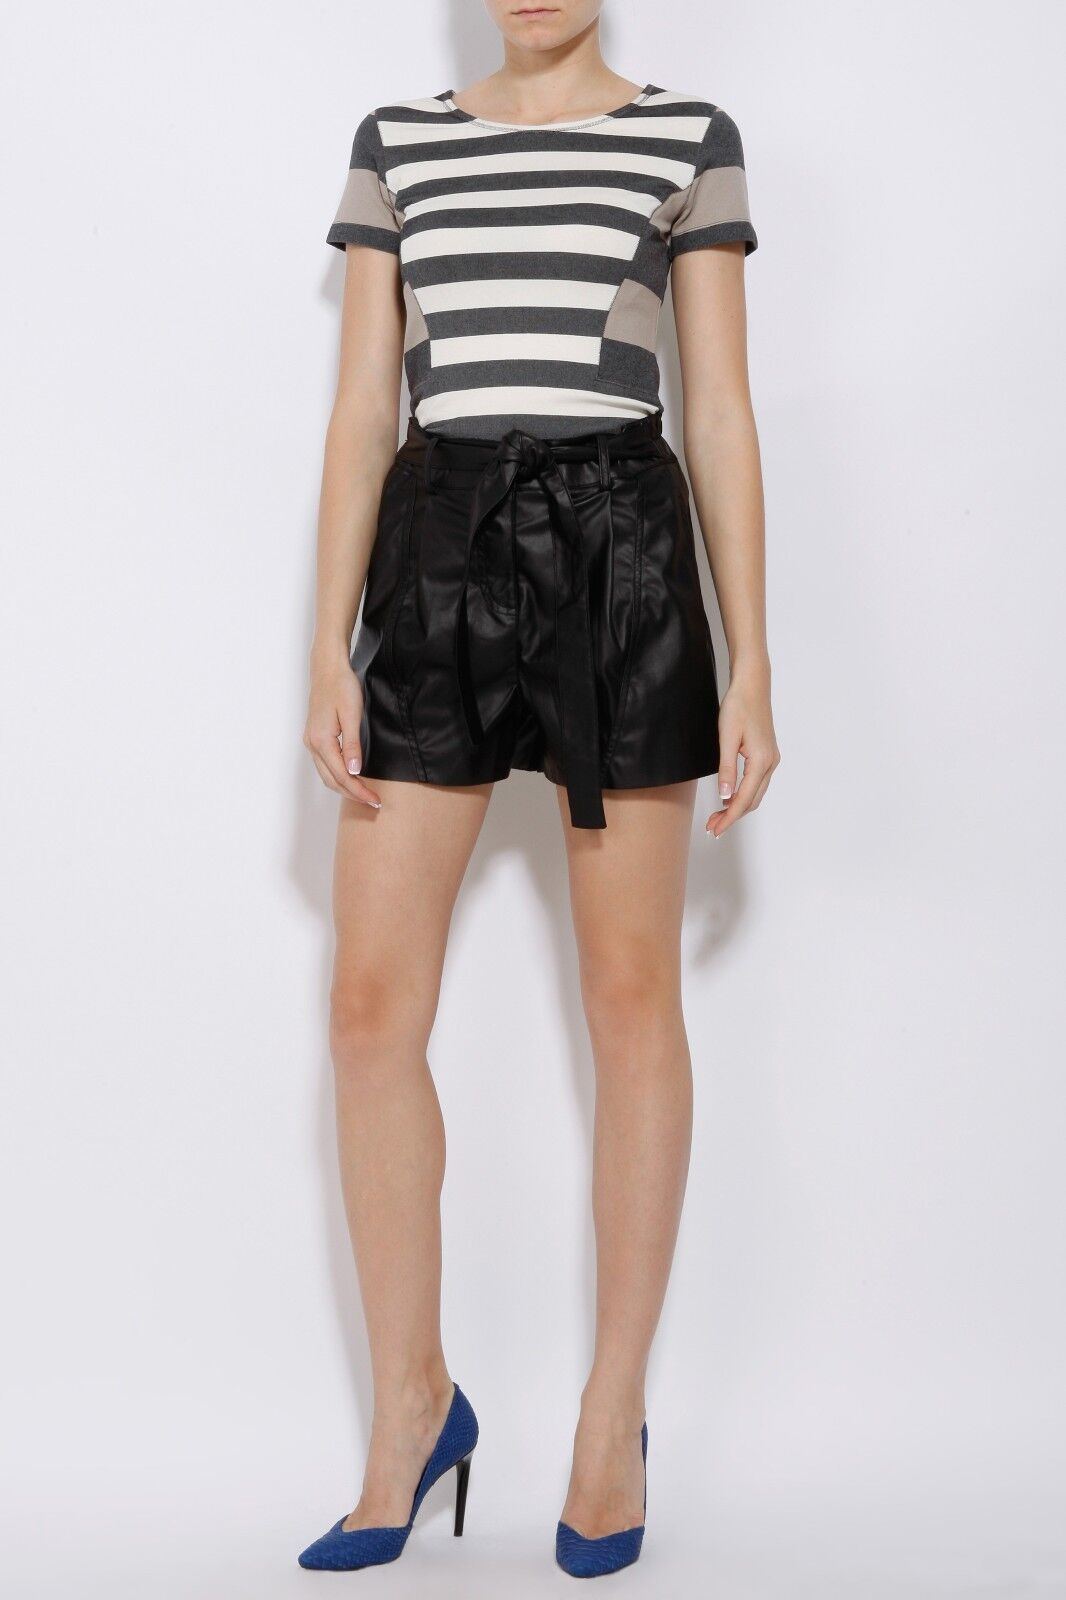 10 CROSBY DEREK LAM Faux Leather Belted Shorts Size 4 NWT  295